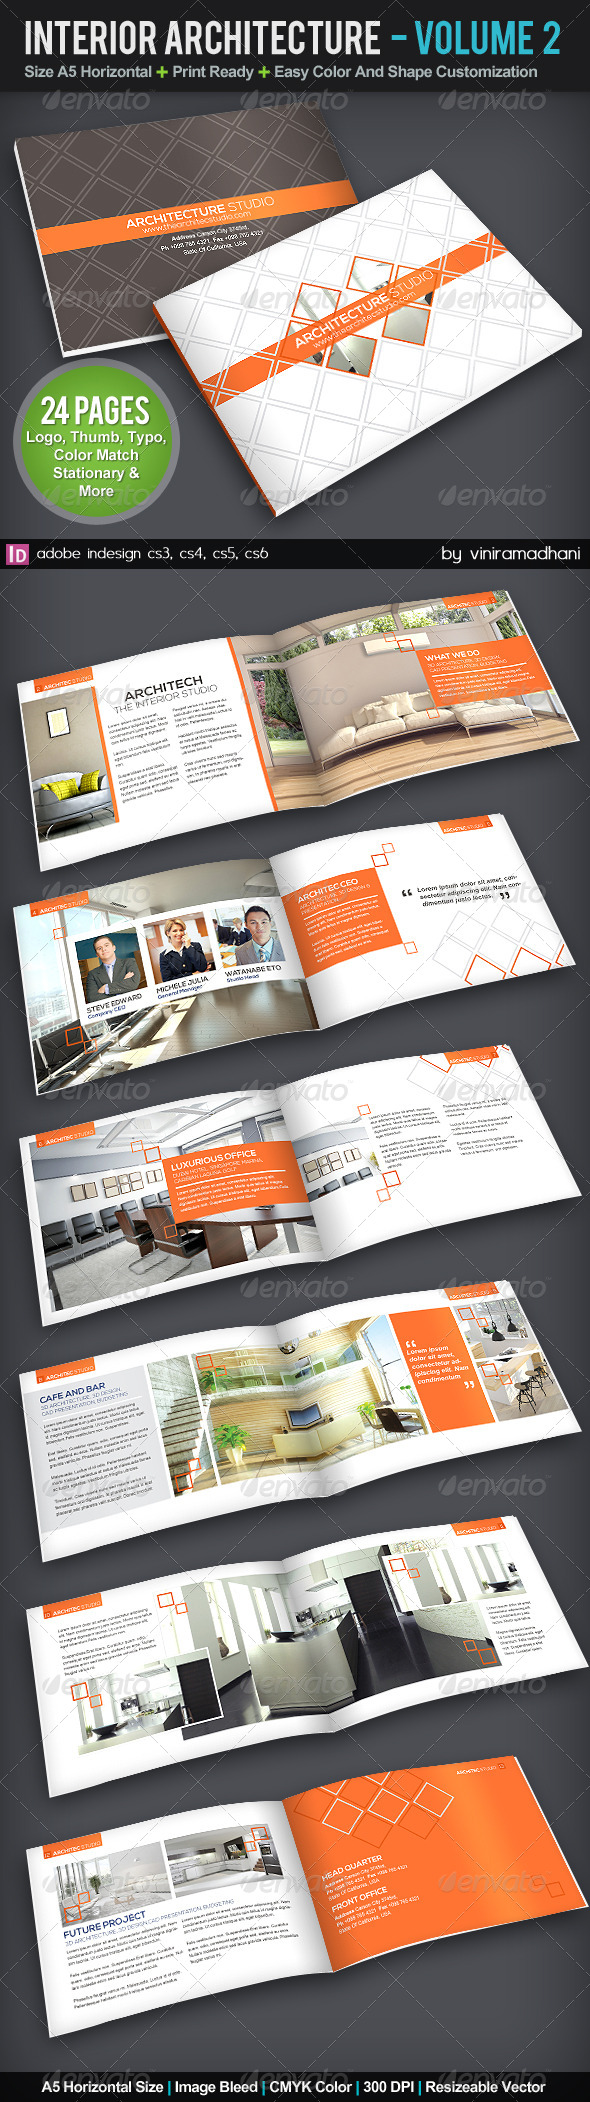 Interior Achitecture Brochure Volume 2